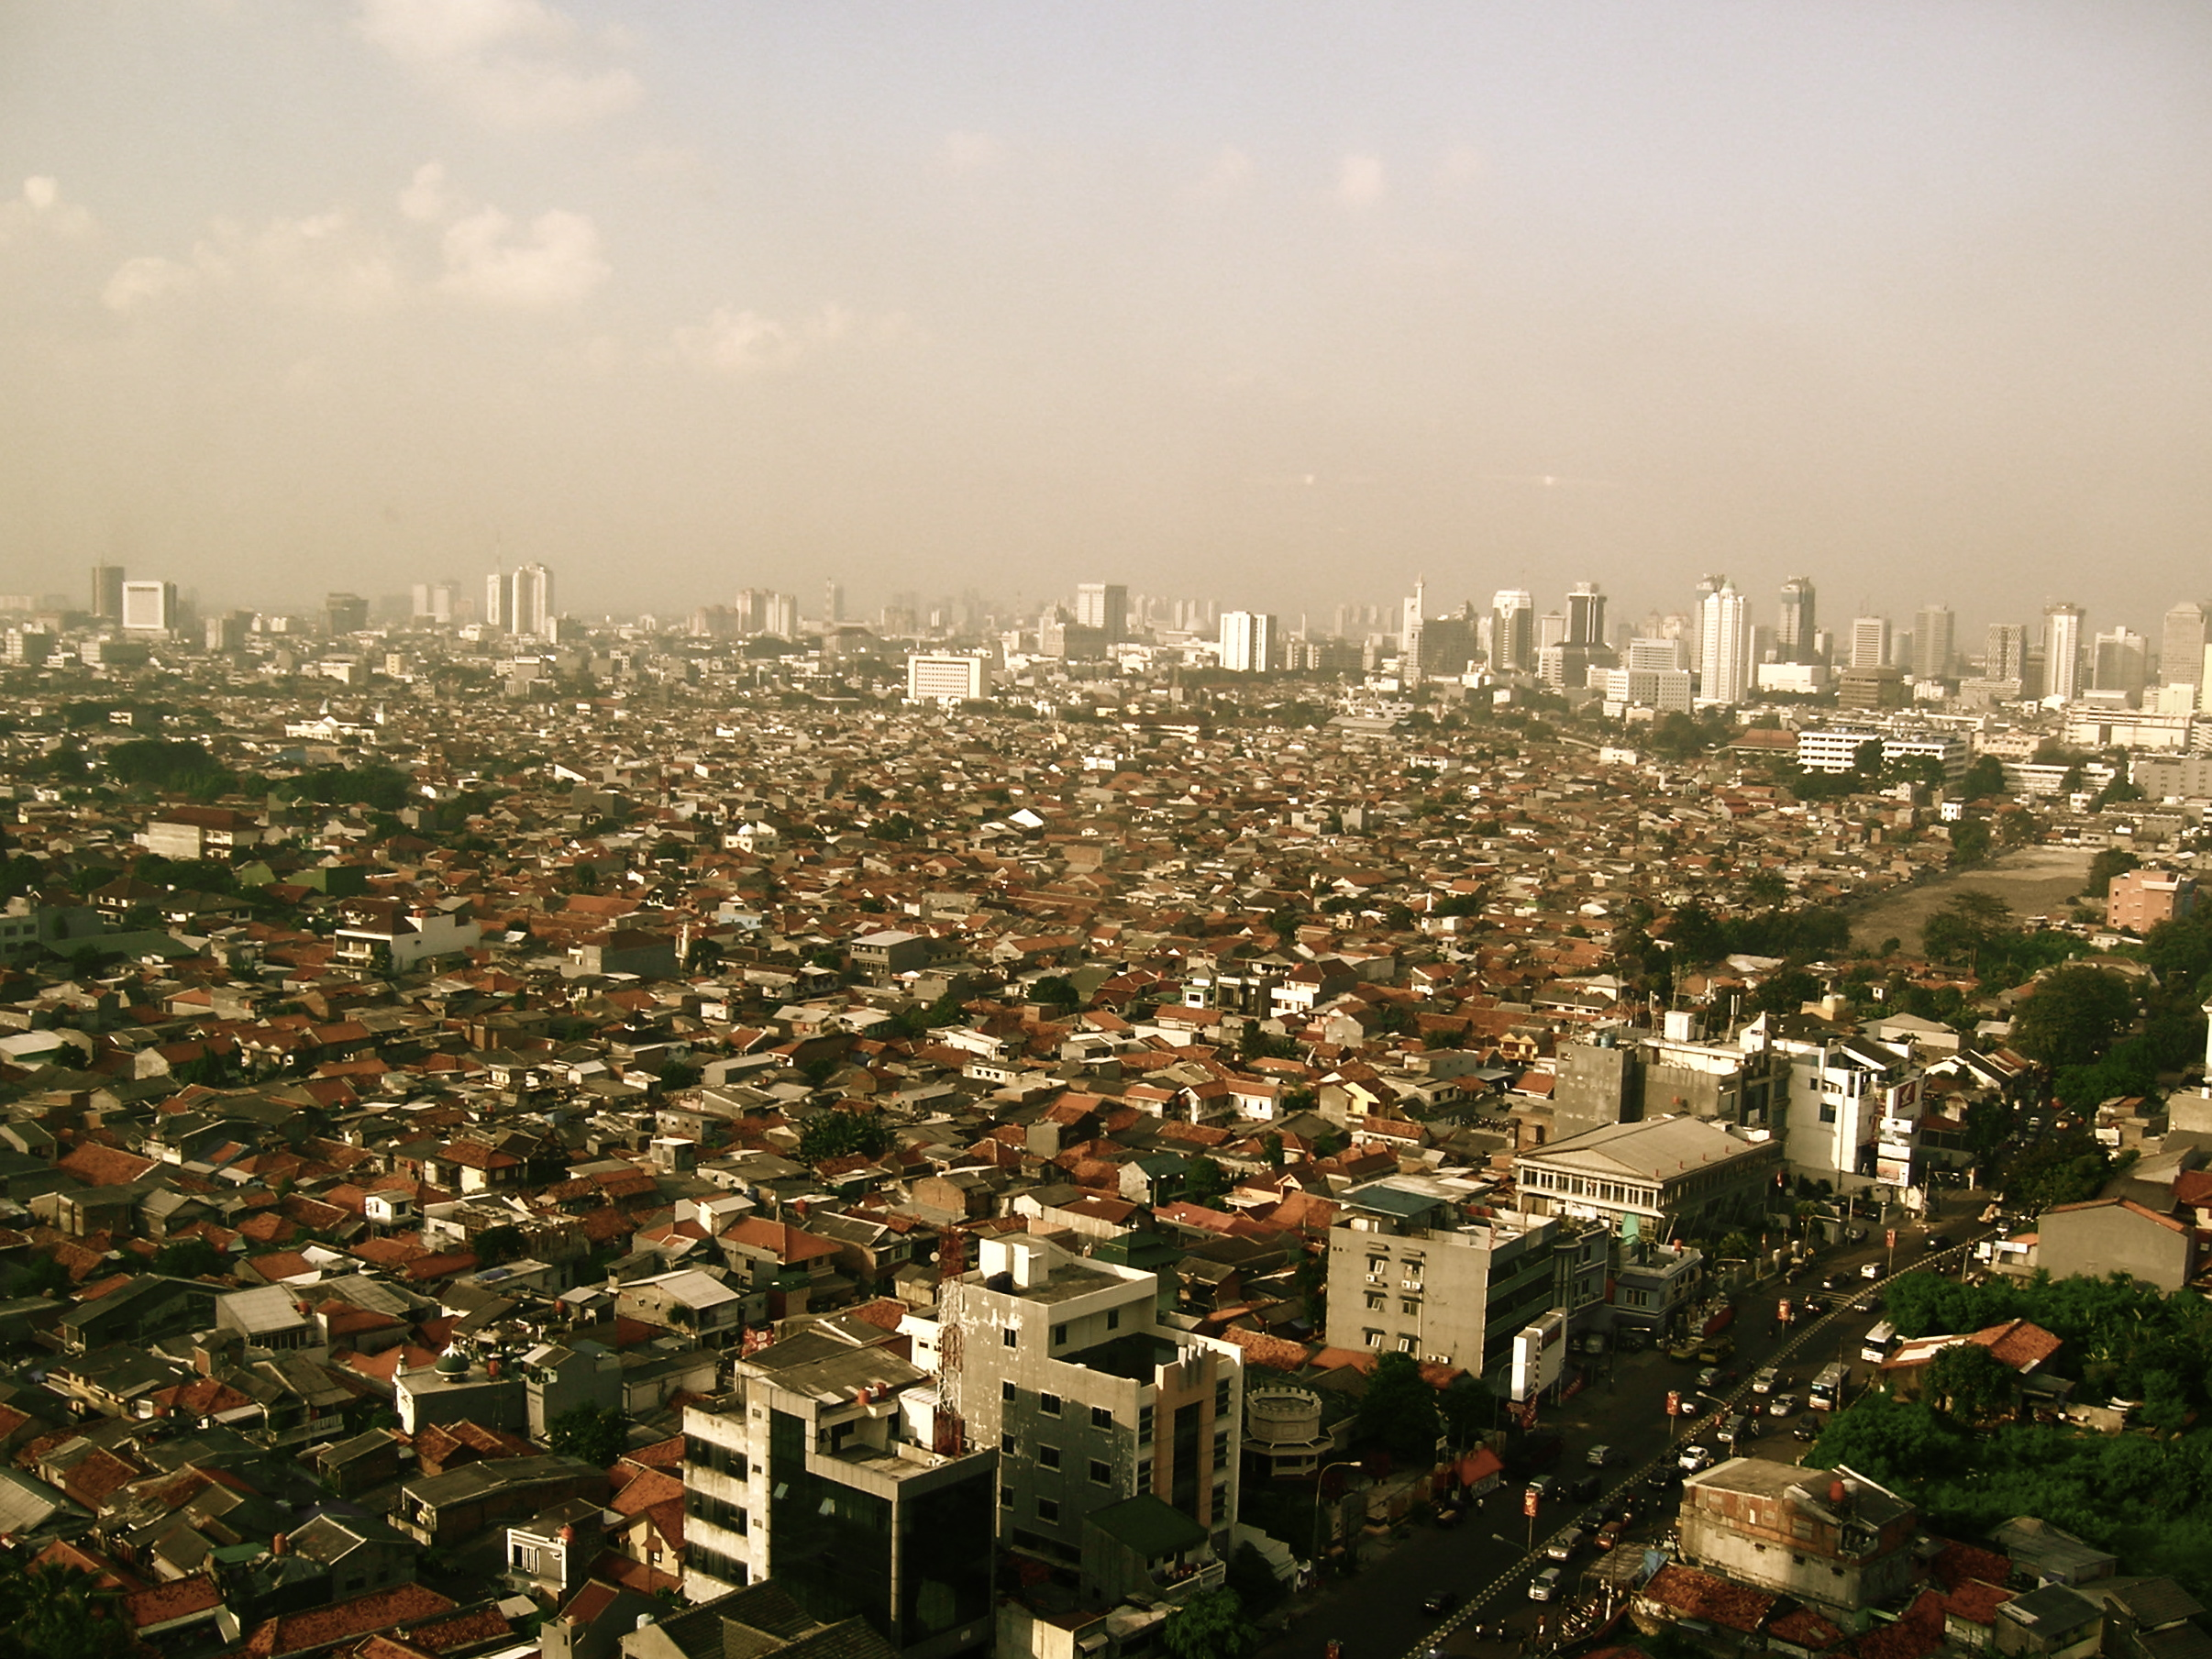 Indonesia launches plan to move its capital city